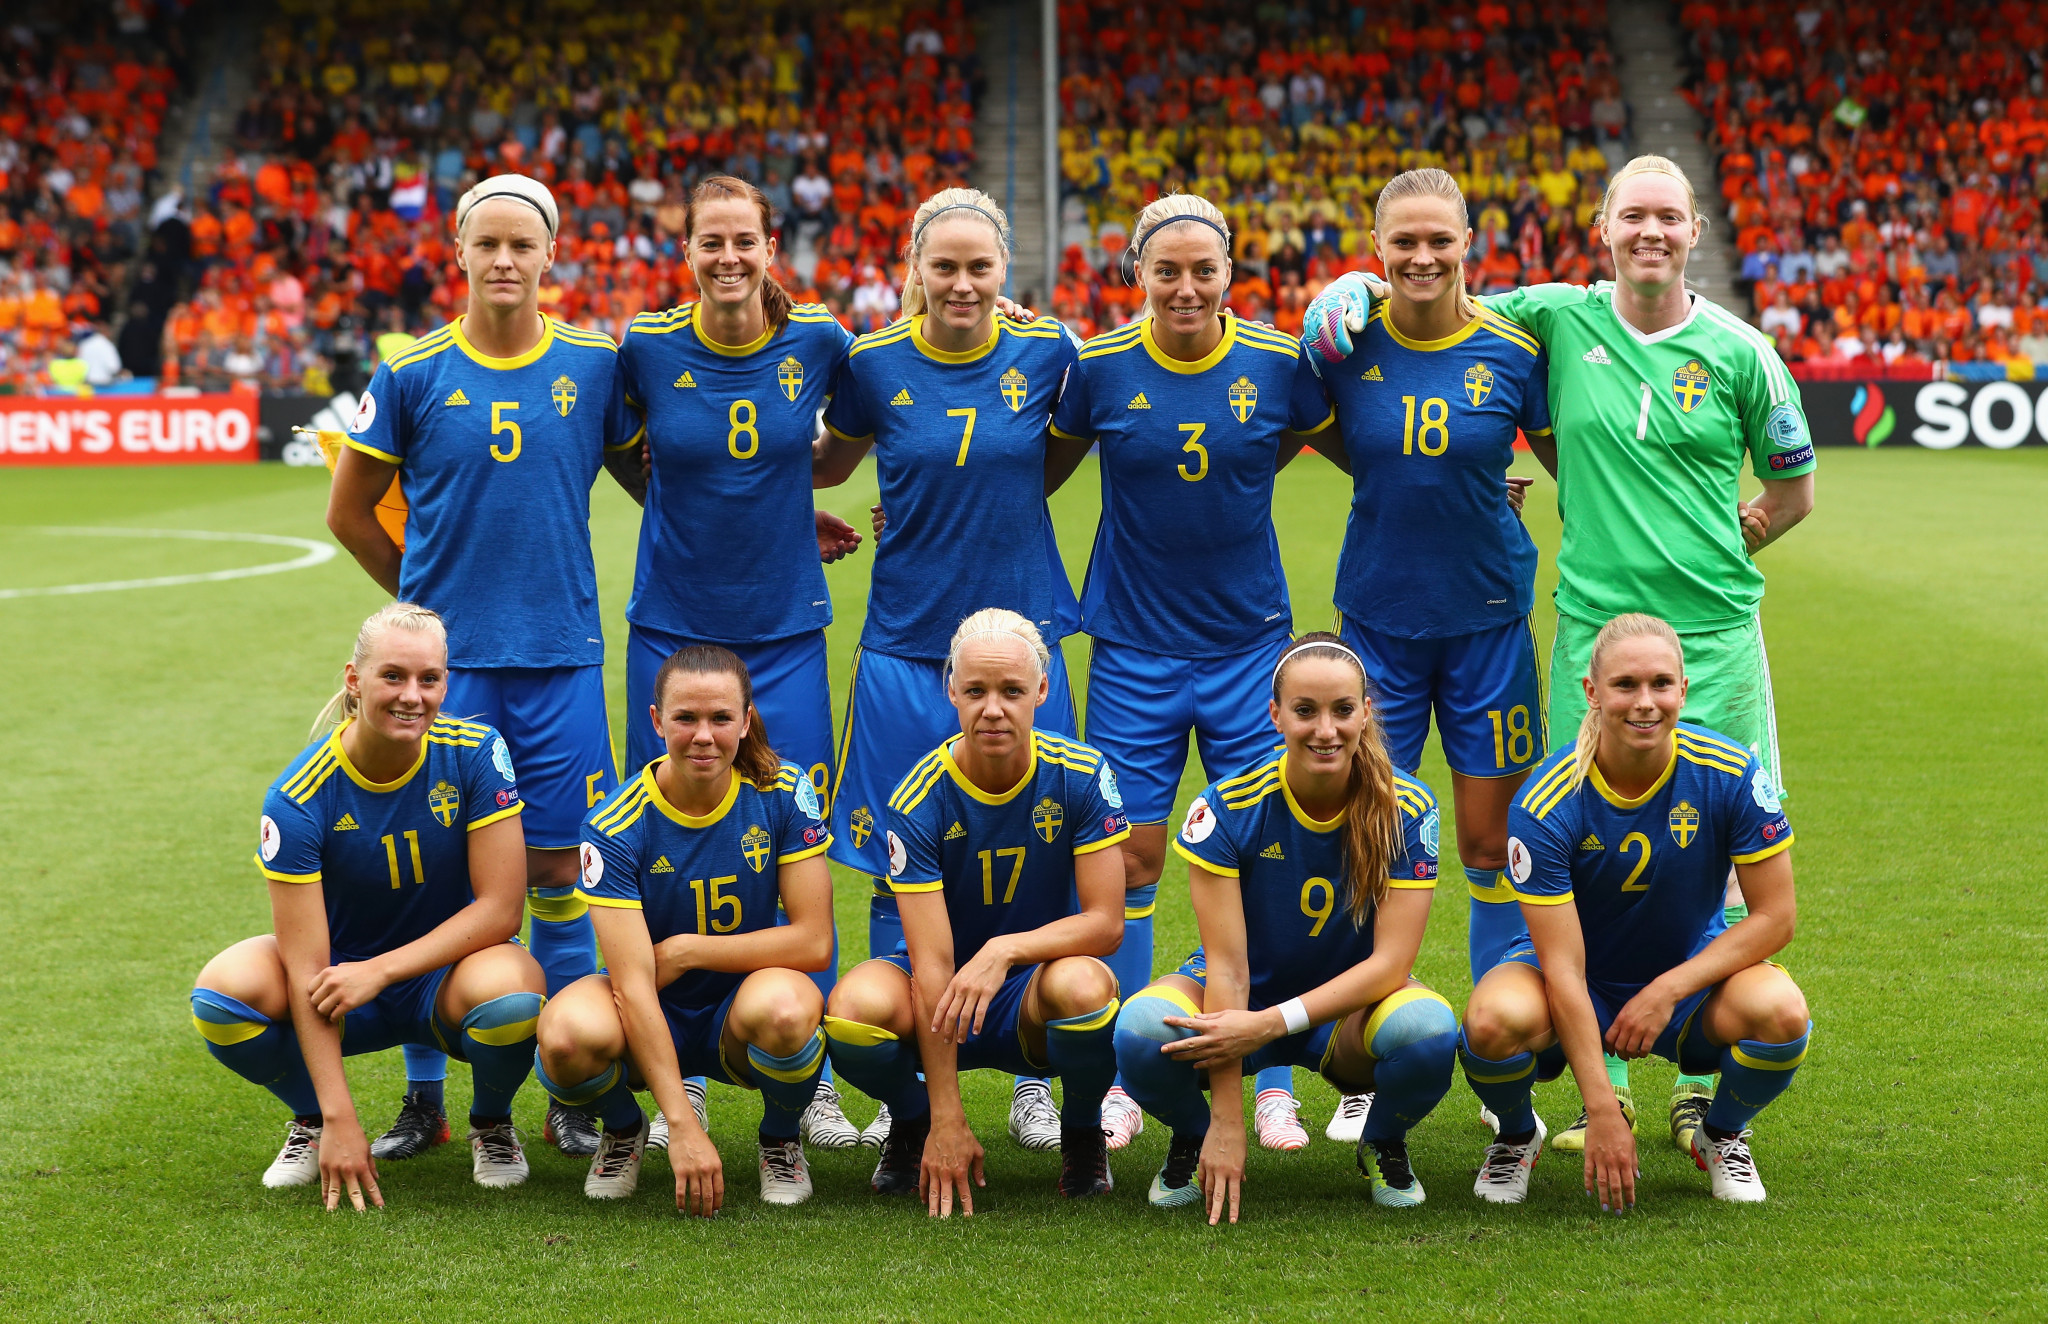 Swedish Football Association agree new contracts for women